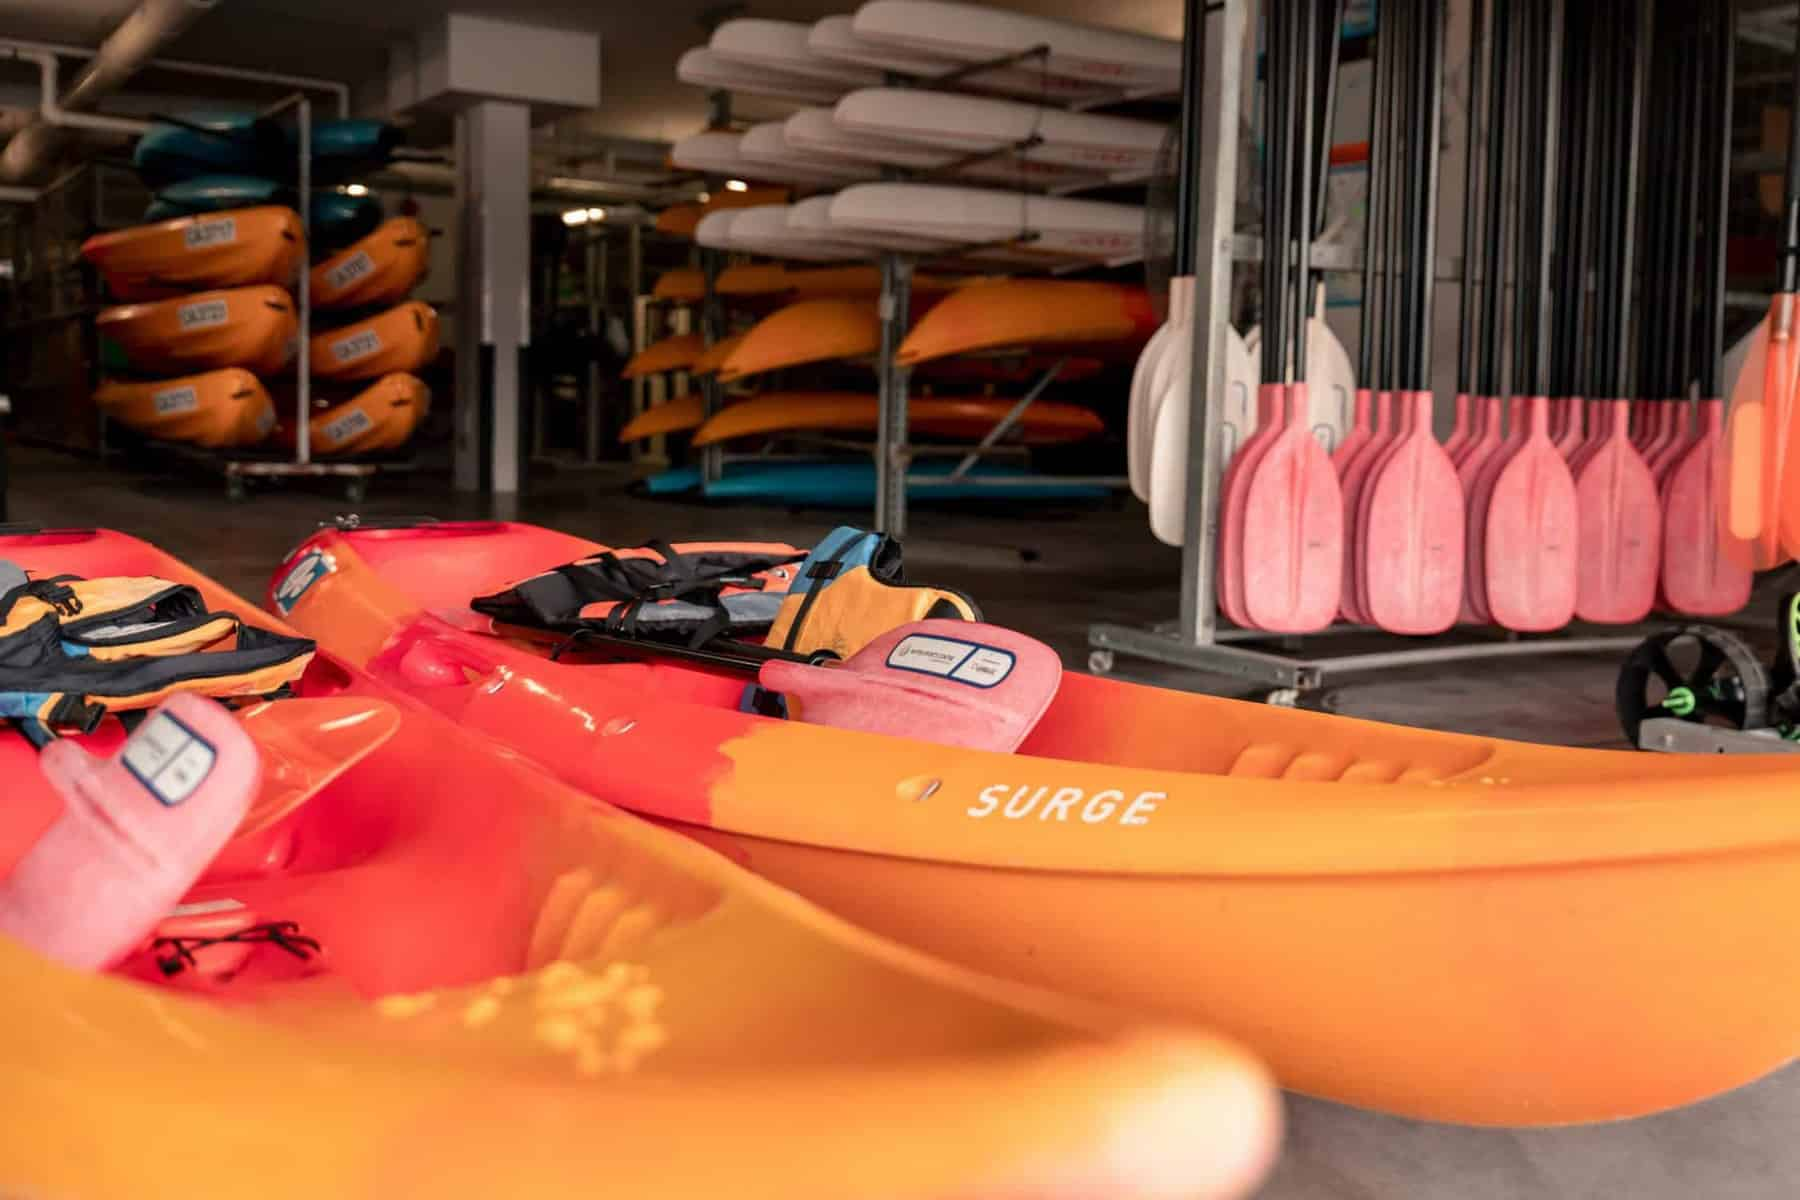 Two Orange Sit On Kayak in storage shed